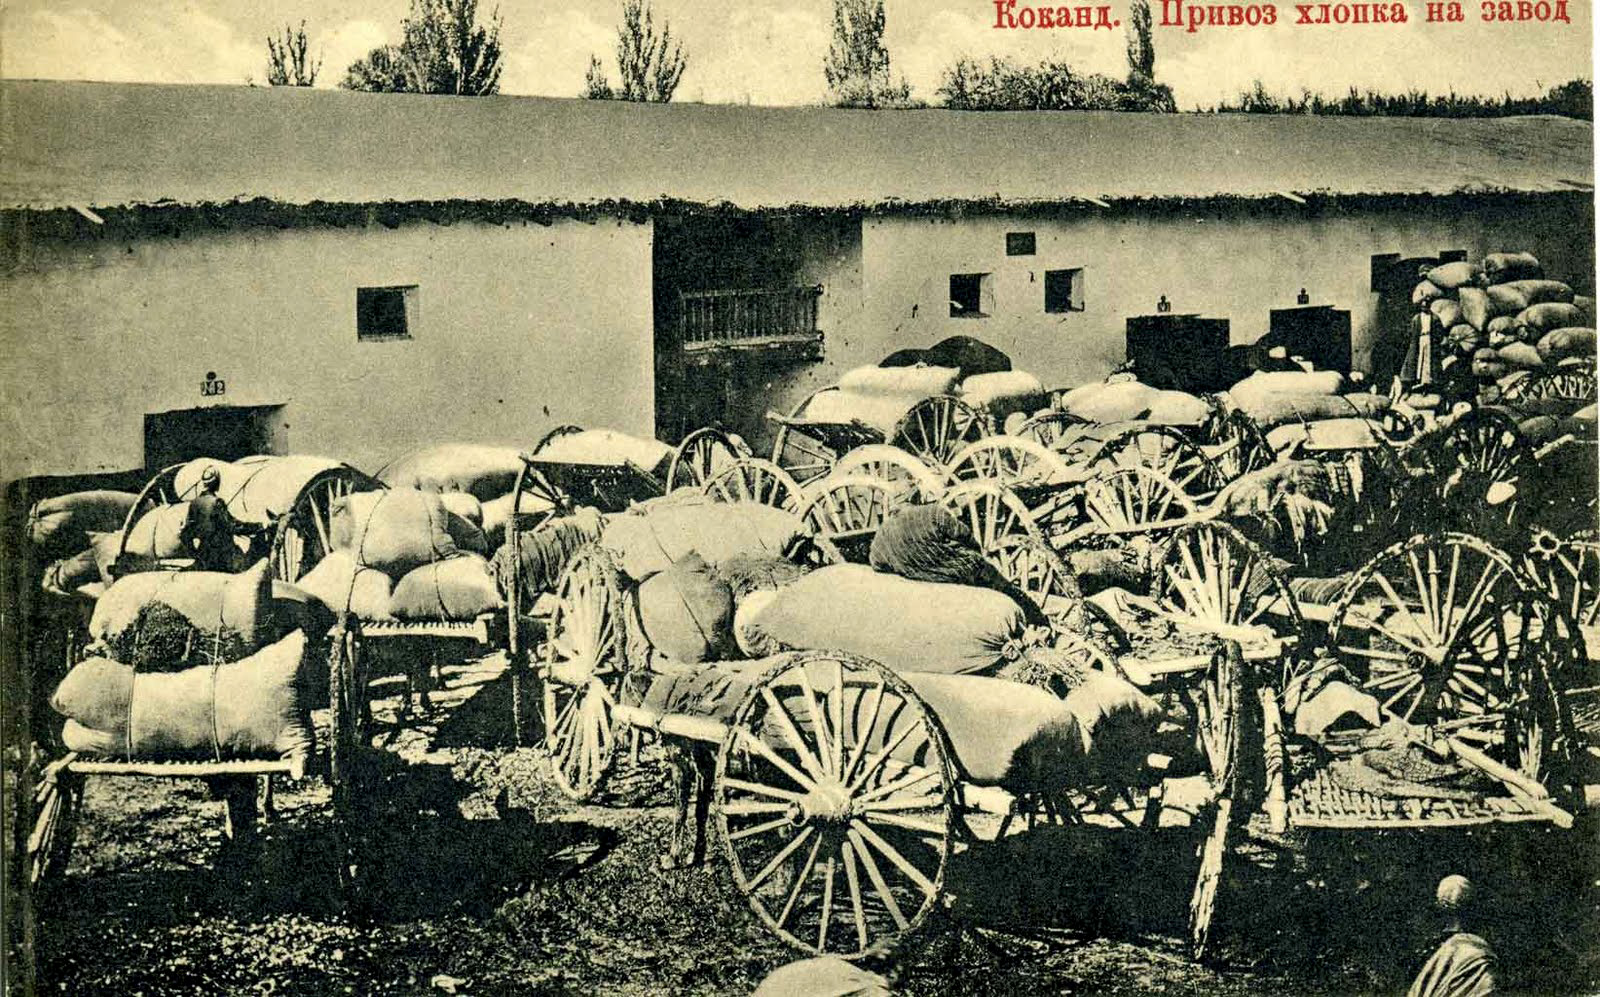 Kokand. Delivery of cotton on plant